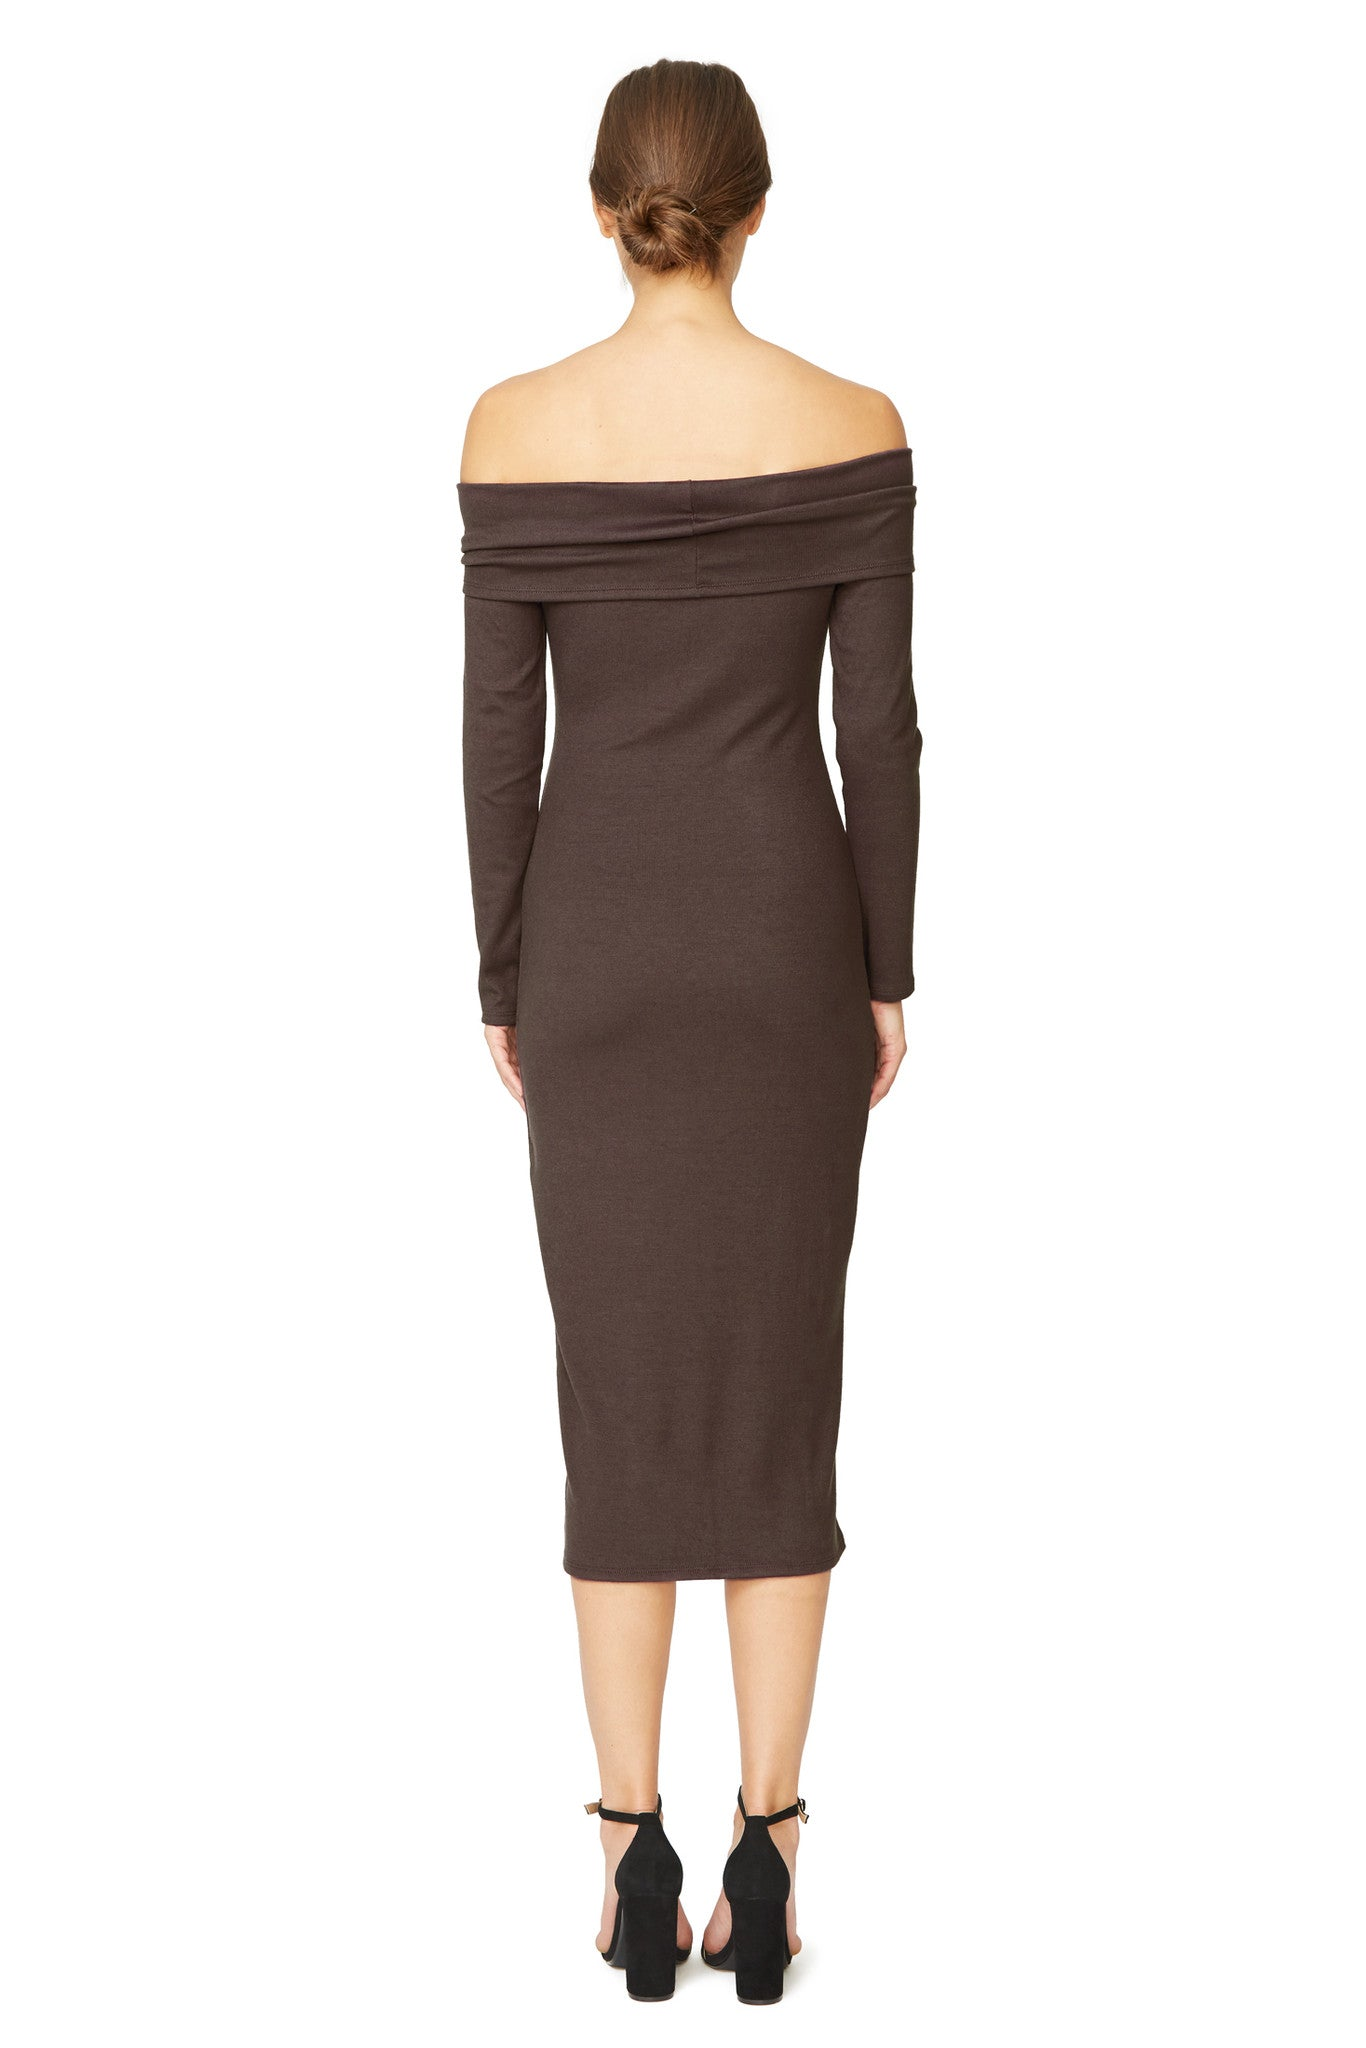 Luxe Rib Welsy Dress - Cocoa